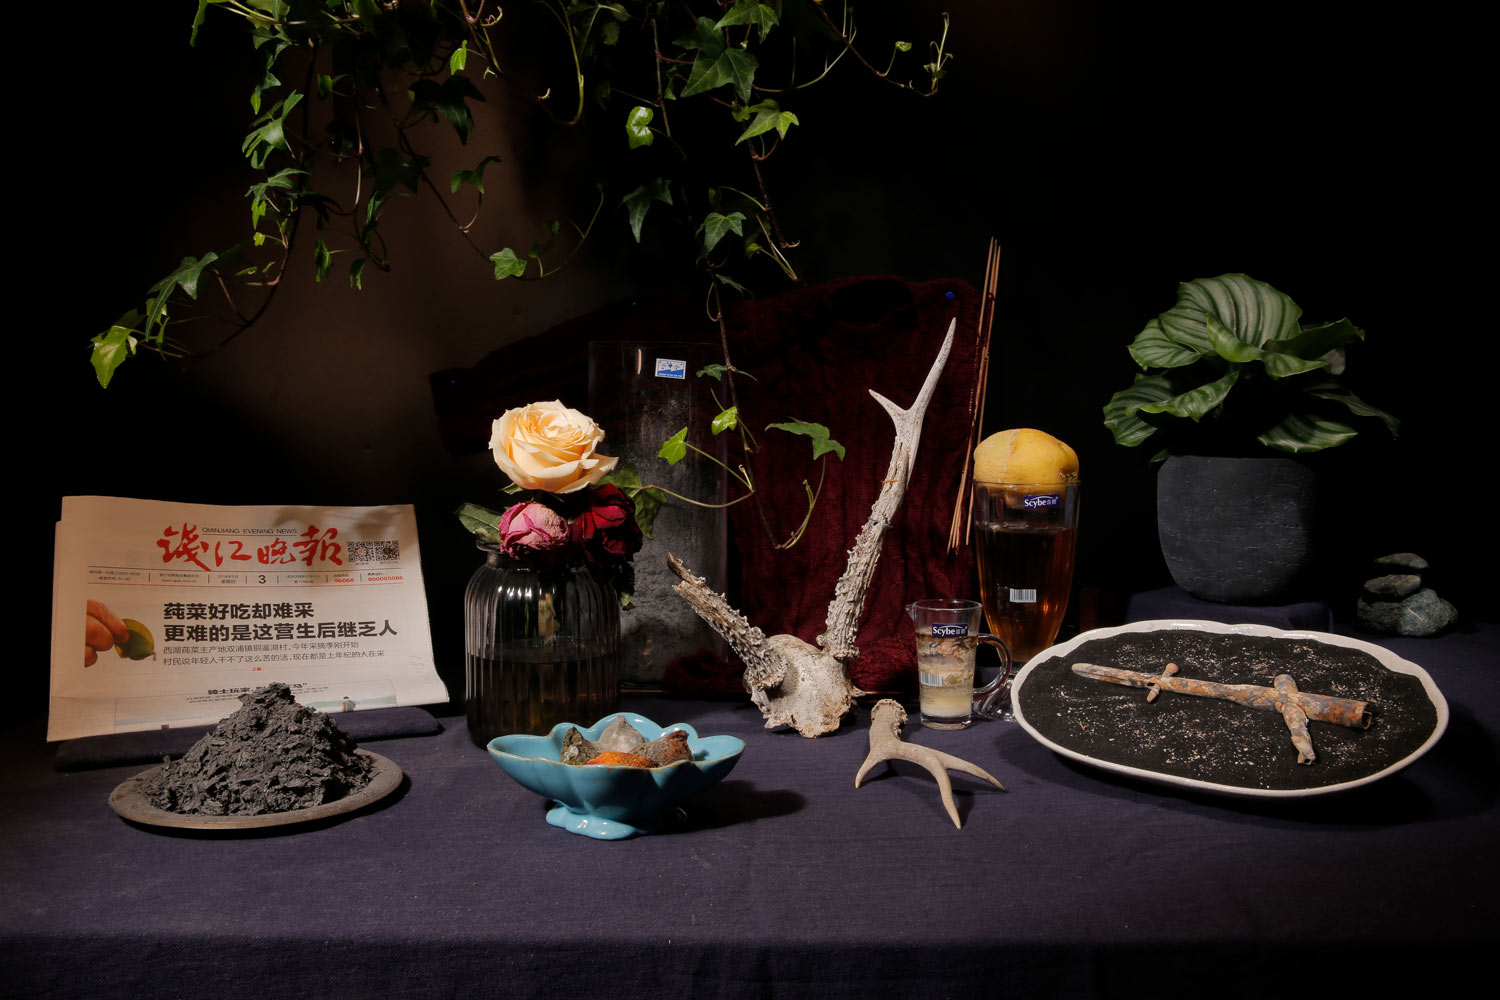 Shao Ruilu, Do Not Be Afraid of Life or Death, You Have Already Seen A Lot , 2018. Interactive Time-lapse Still life Photography + Still Life Objects Display. © Courtesy of the artist